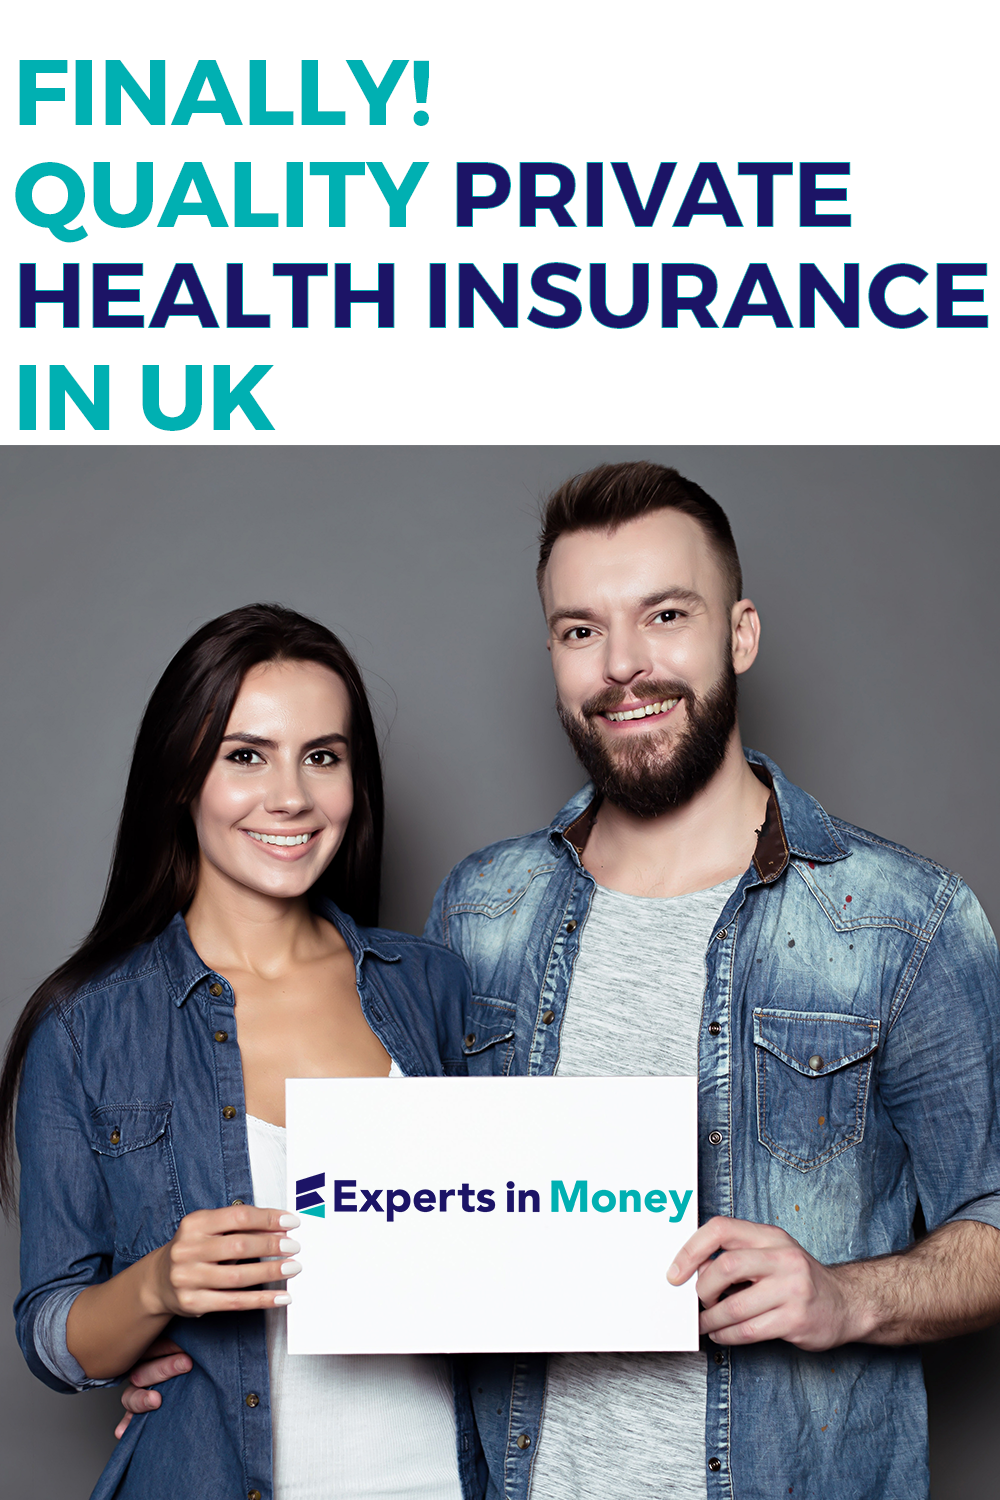 Signup here to receive your private medical insurance